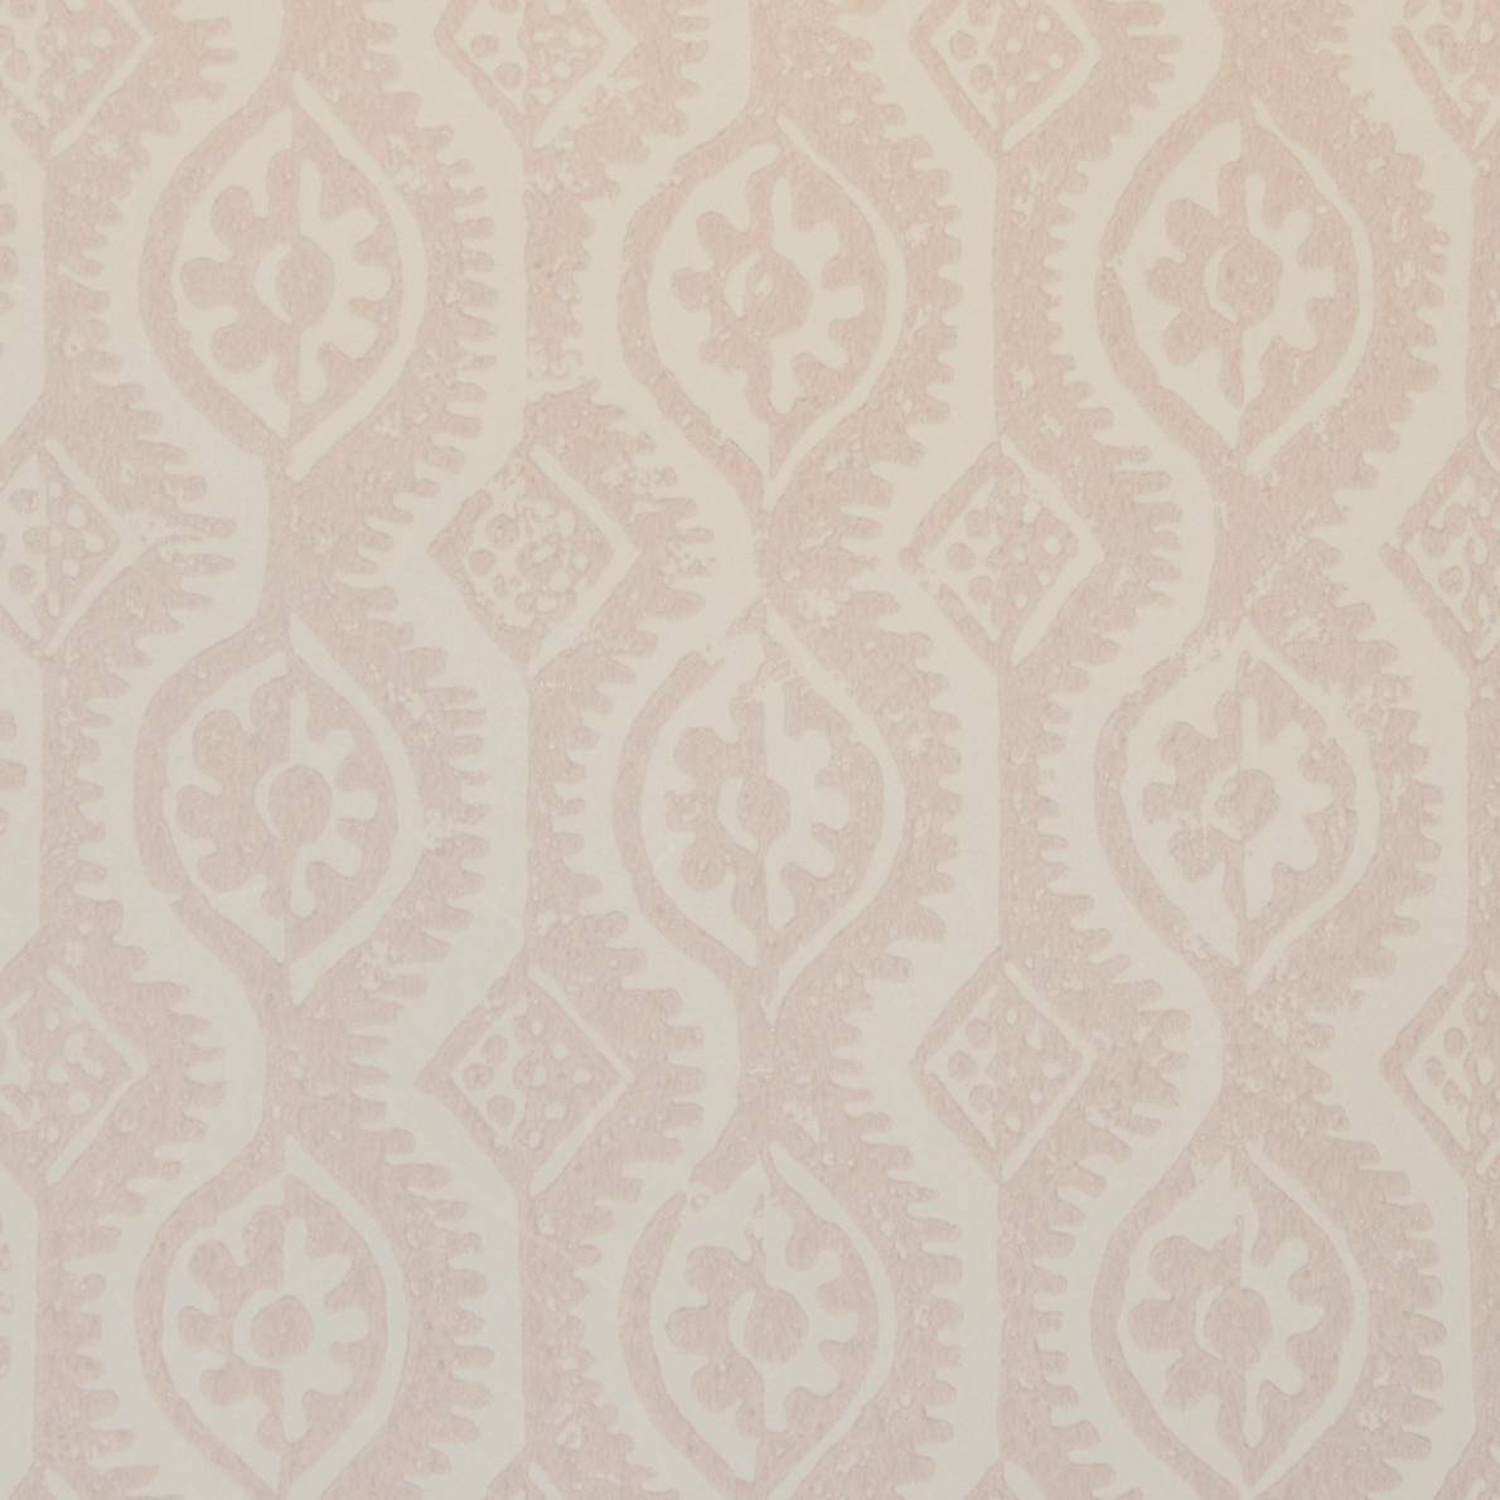 <p><strong>SMALL DAMASK</strong>pink 880-08<a href=/the-peggy-angus-collection/small-damask-pink-880-08>More →</a></p>